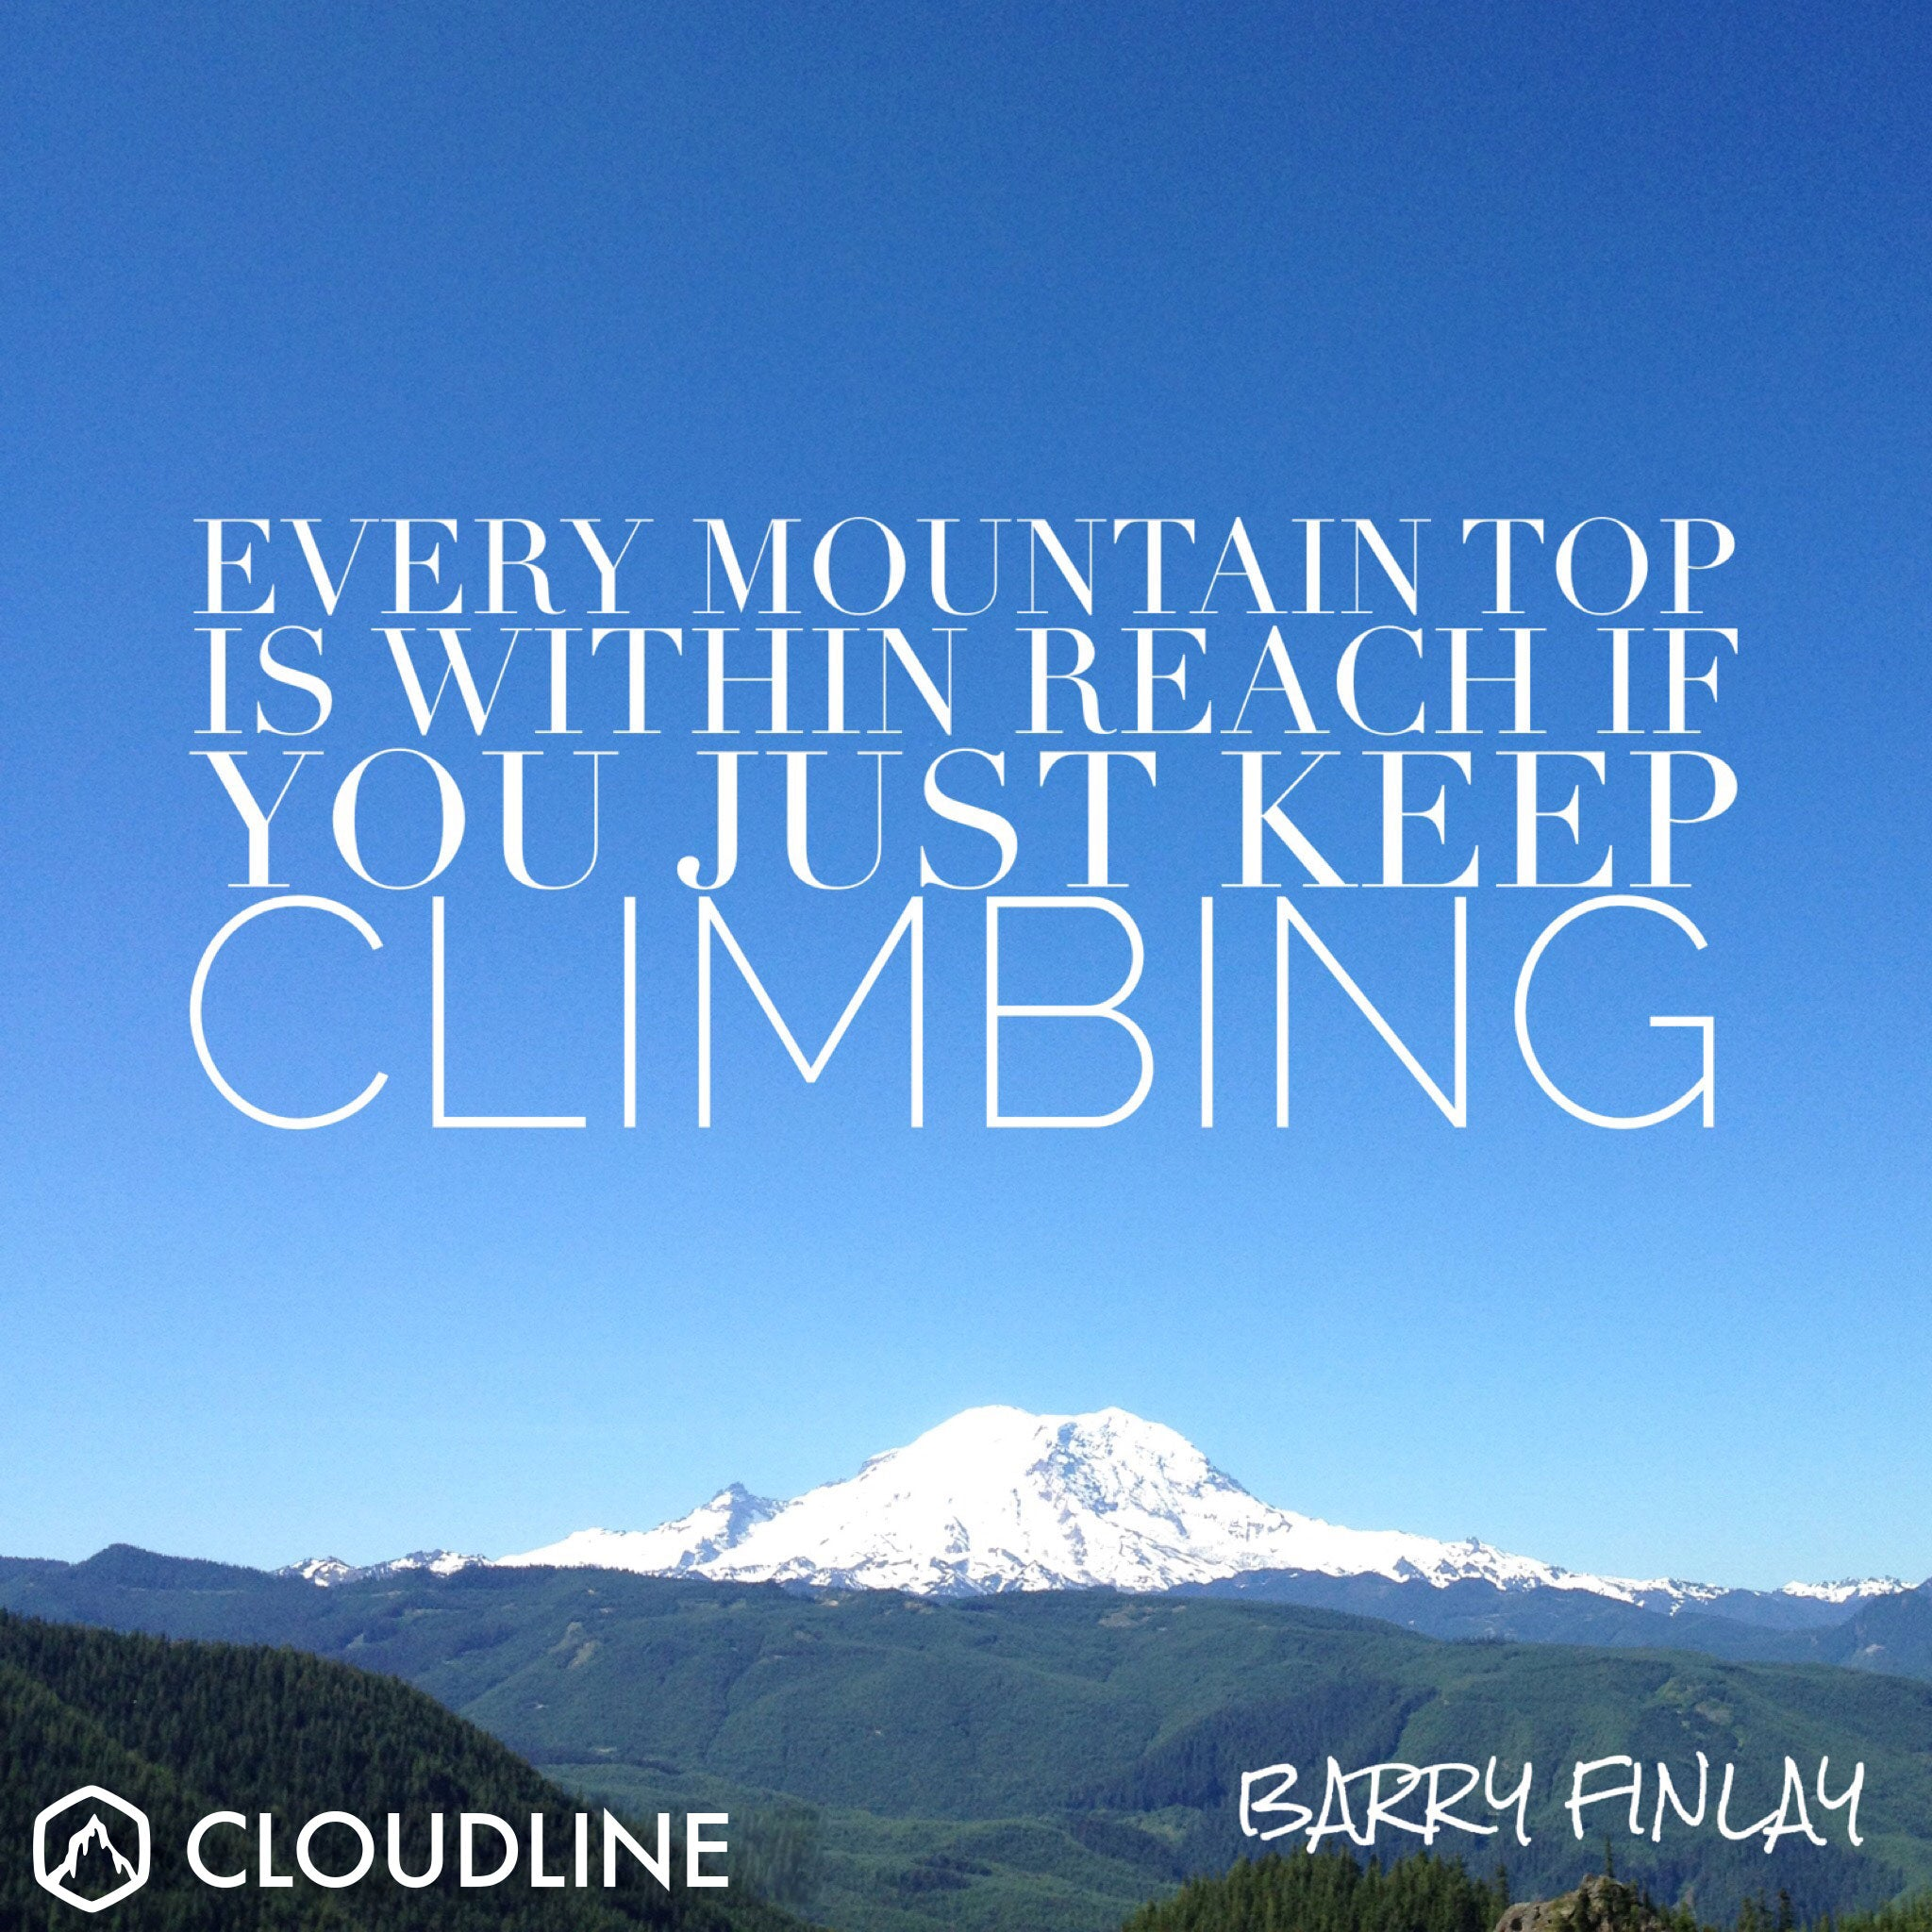 Get Inspired to Hike More with These Outdoor Quotes - Finlay